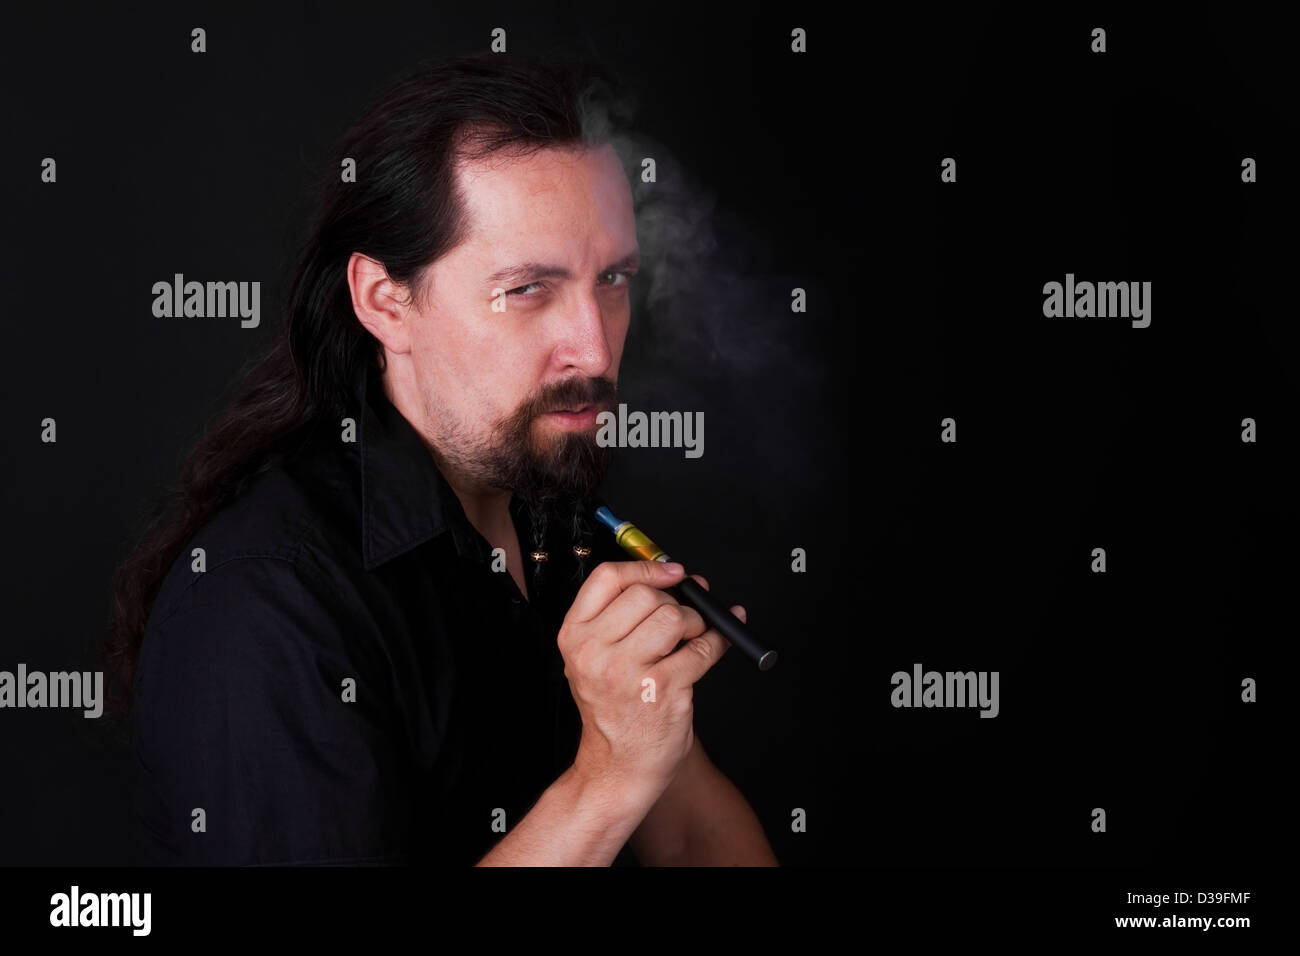 cool looking attractive man with E cigarette is point to the viewer - Stock Image